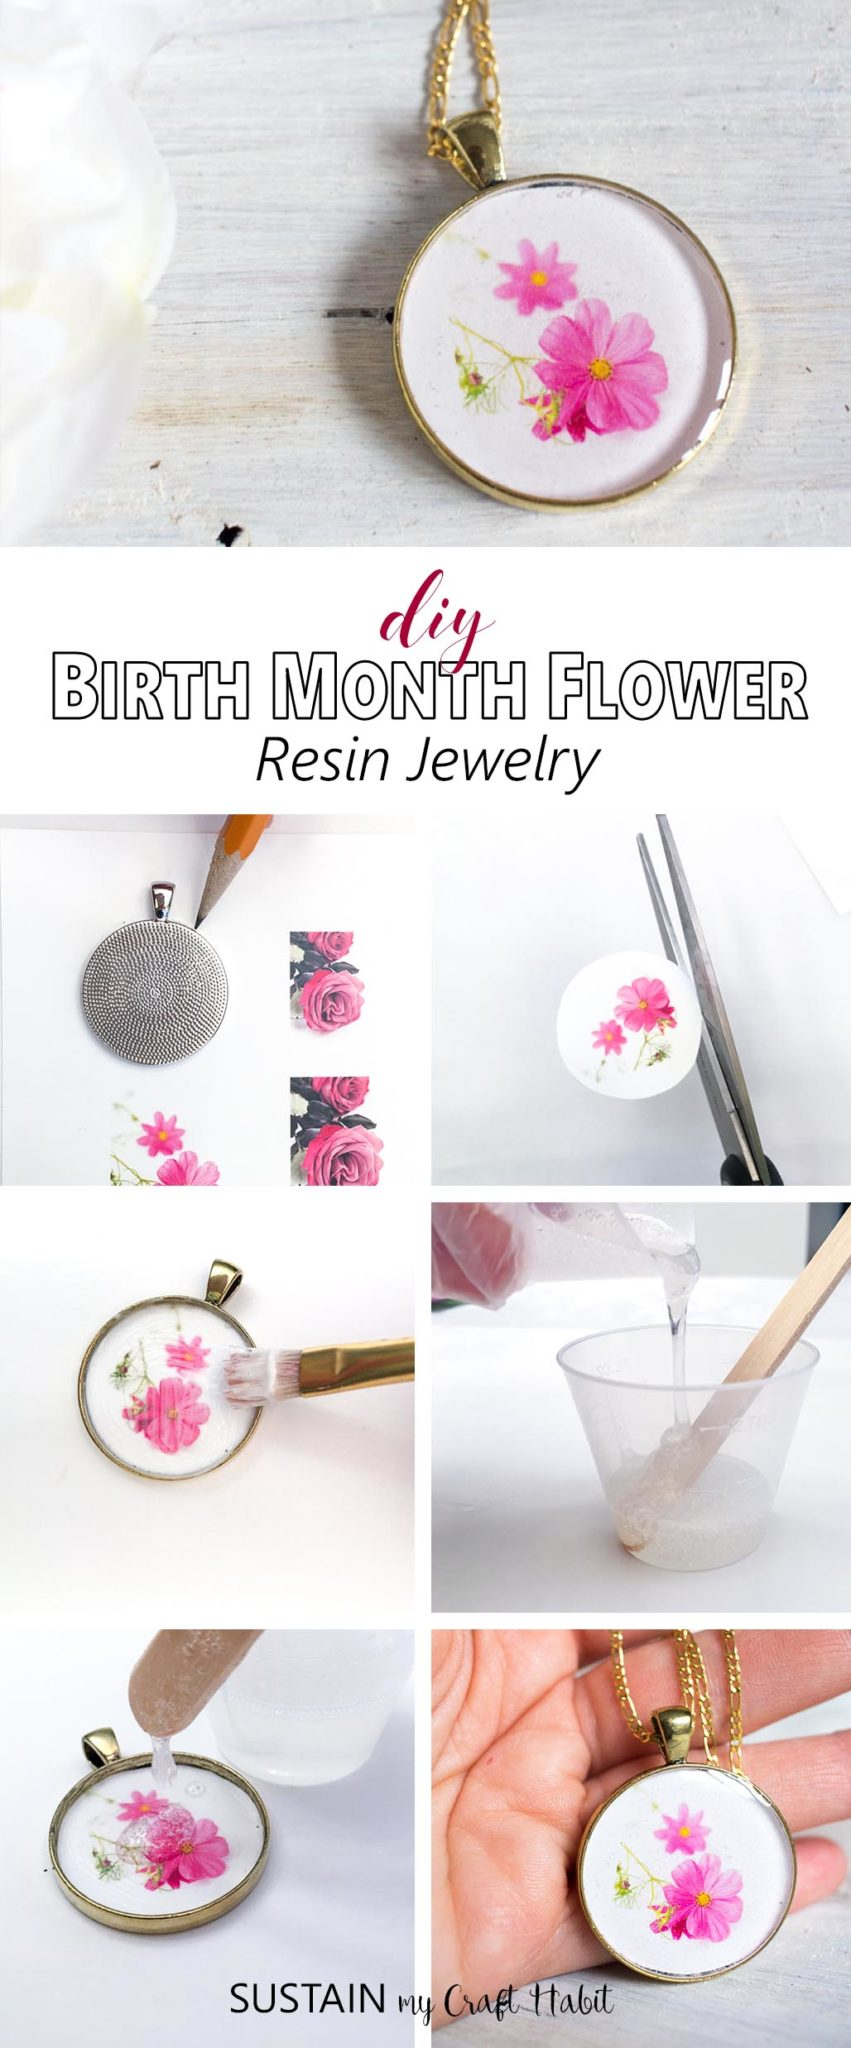 Such a thoughtful and personalized handmade gift idea! Learn how to make resin jewelry with this step-by-step tutorial.